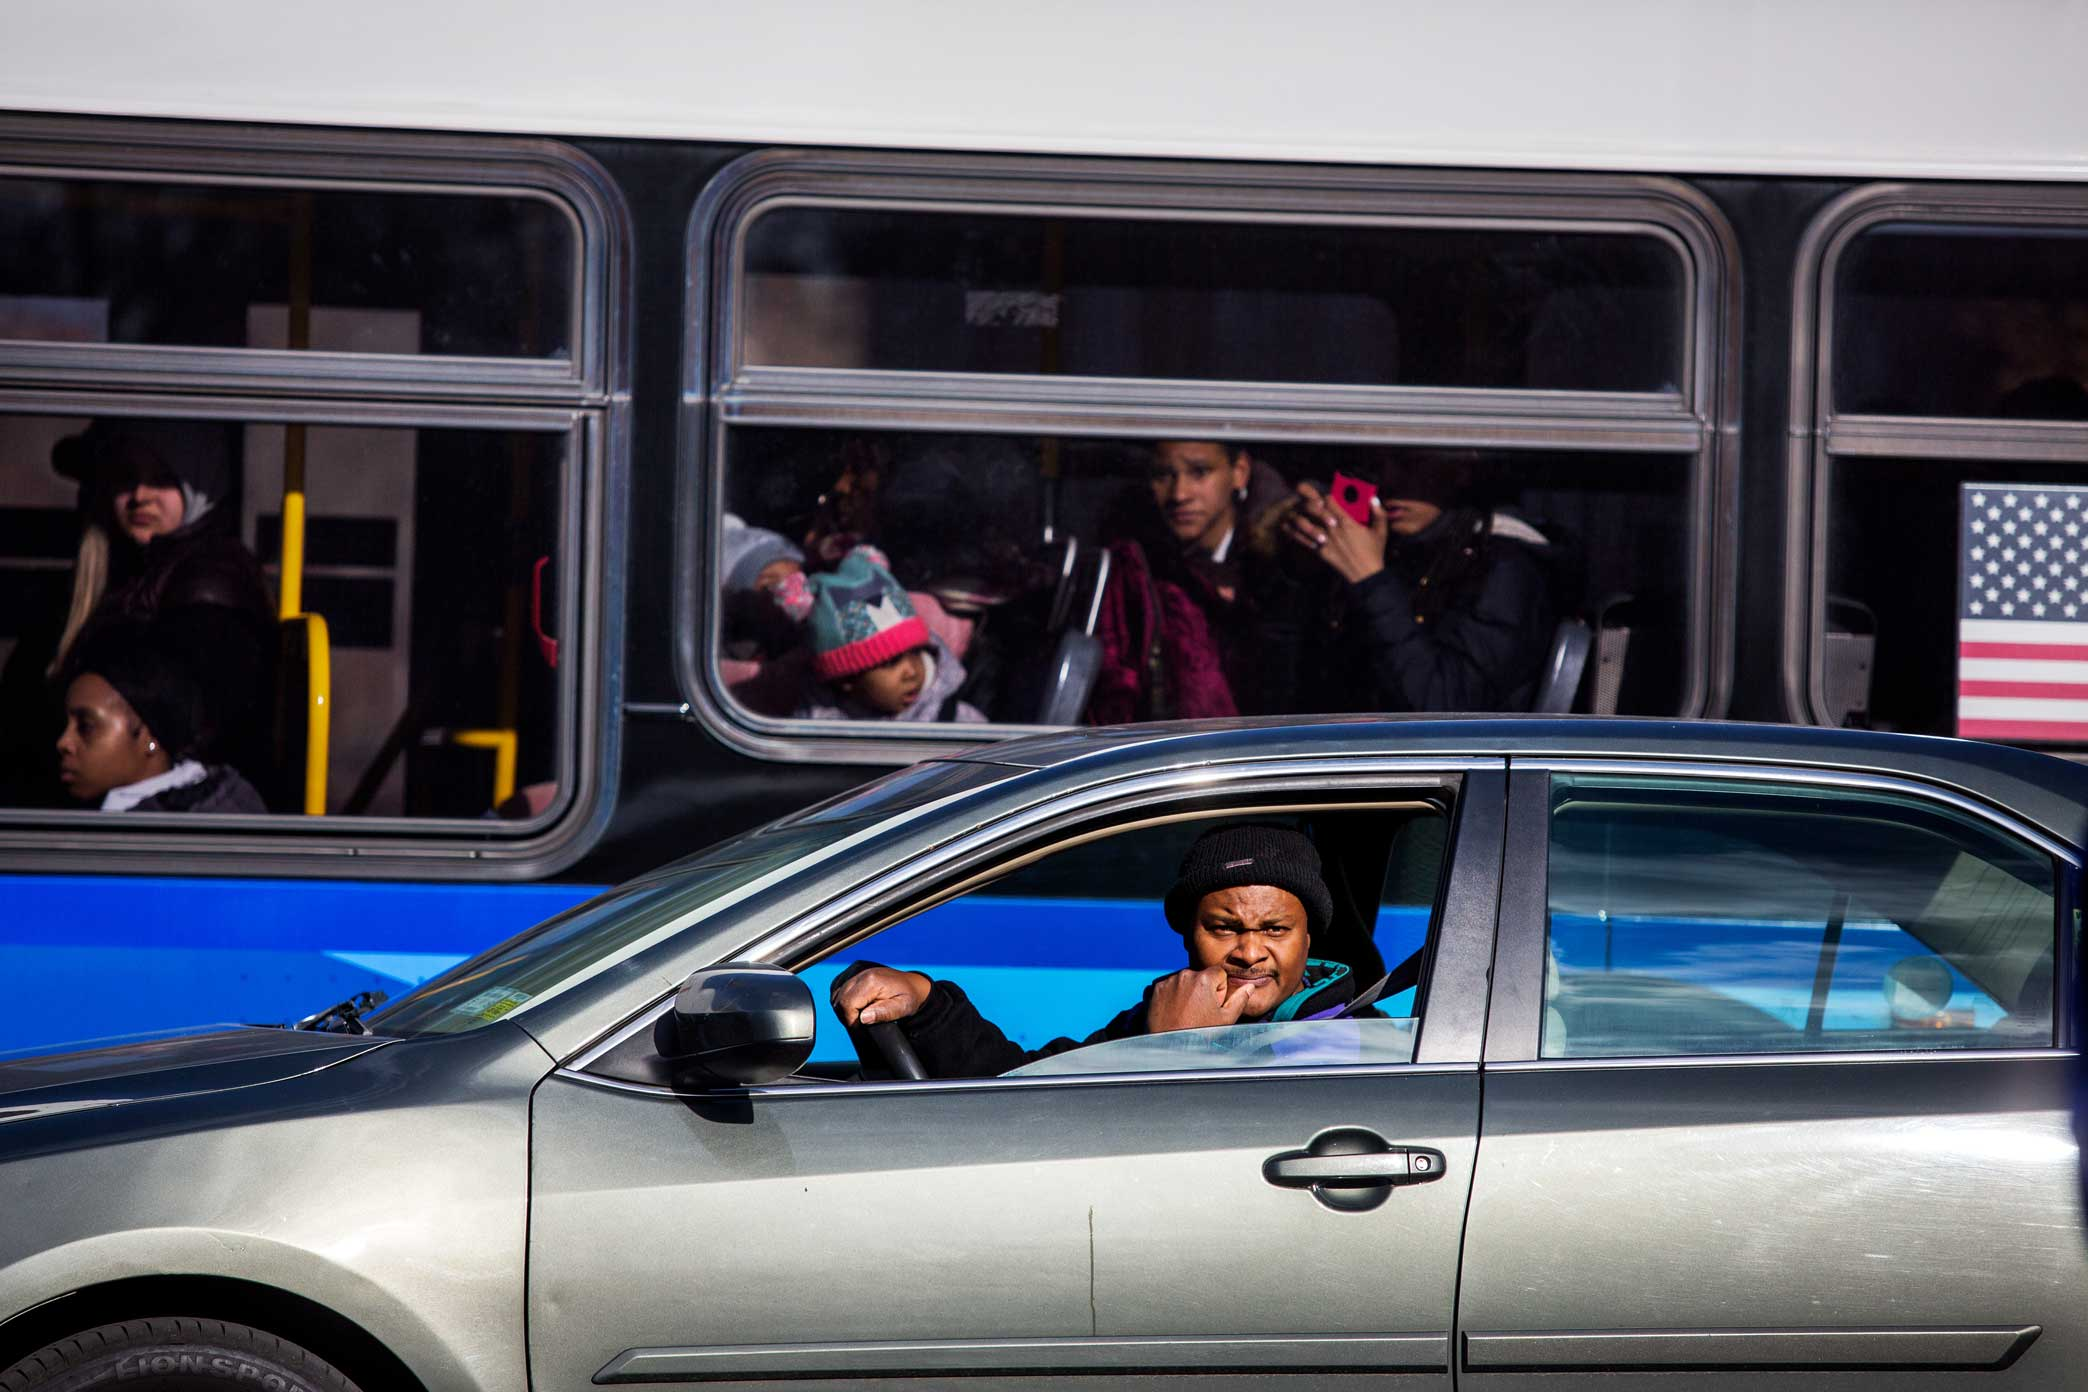 Commuters watch the protesters chant and protest the shooting death of Saheed Vassell.